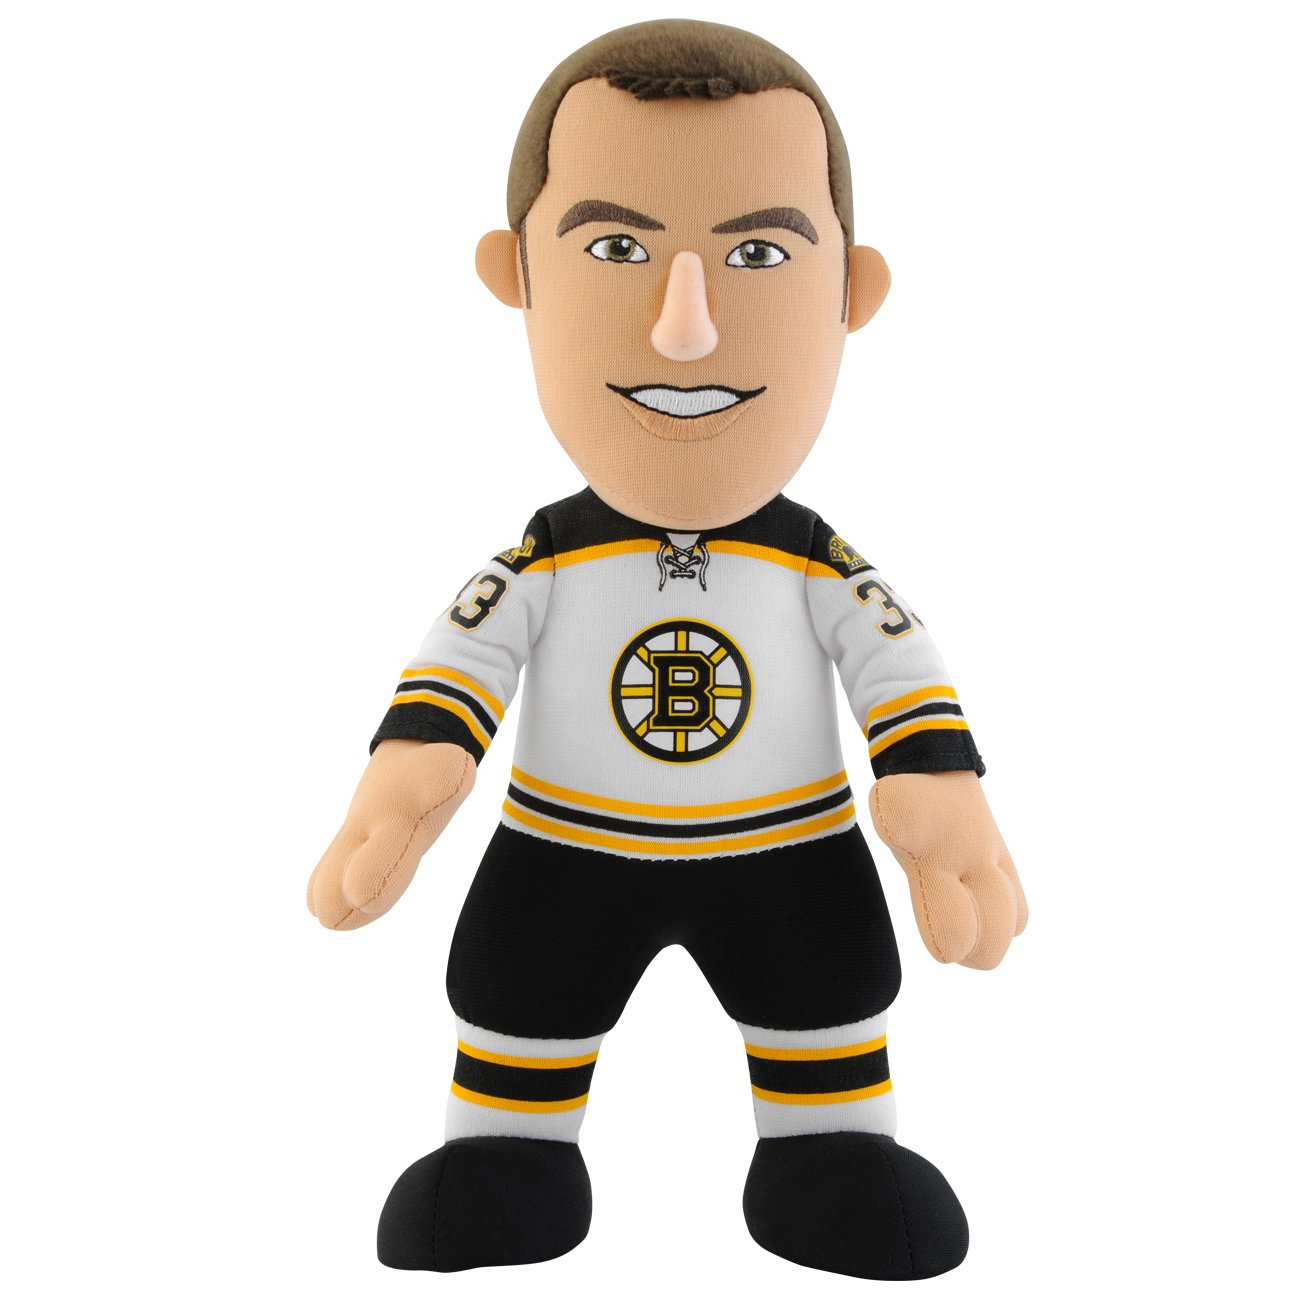 Nhl: Boston Bruins-Zdeno Chara 10 in Plush Bleacher Creatures EPLUSNHLP10BRUZC Accessory Consumer Accessories